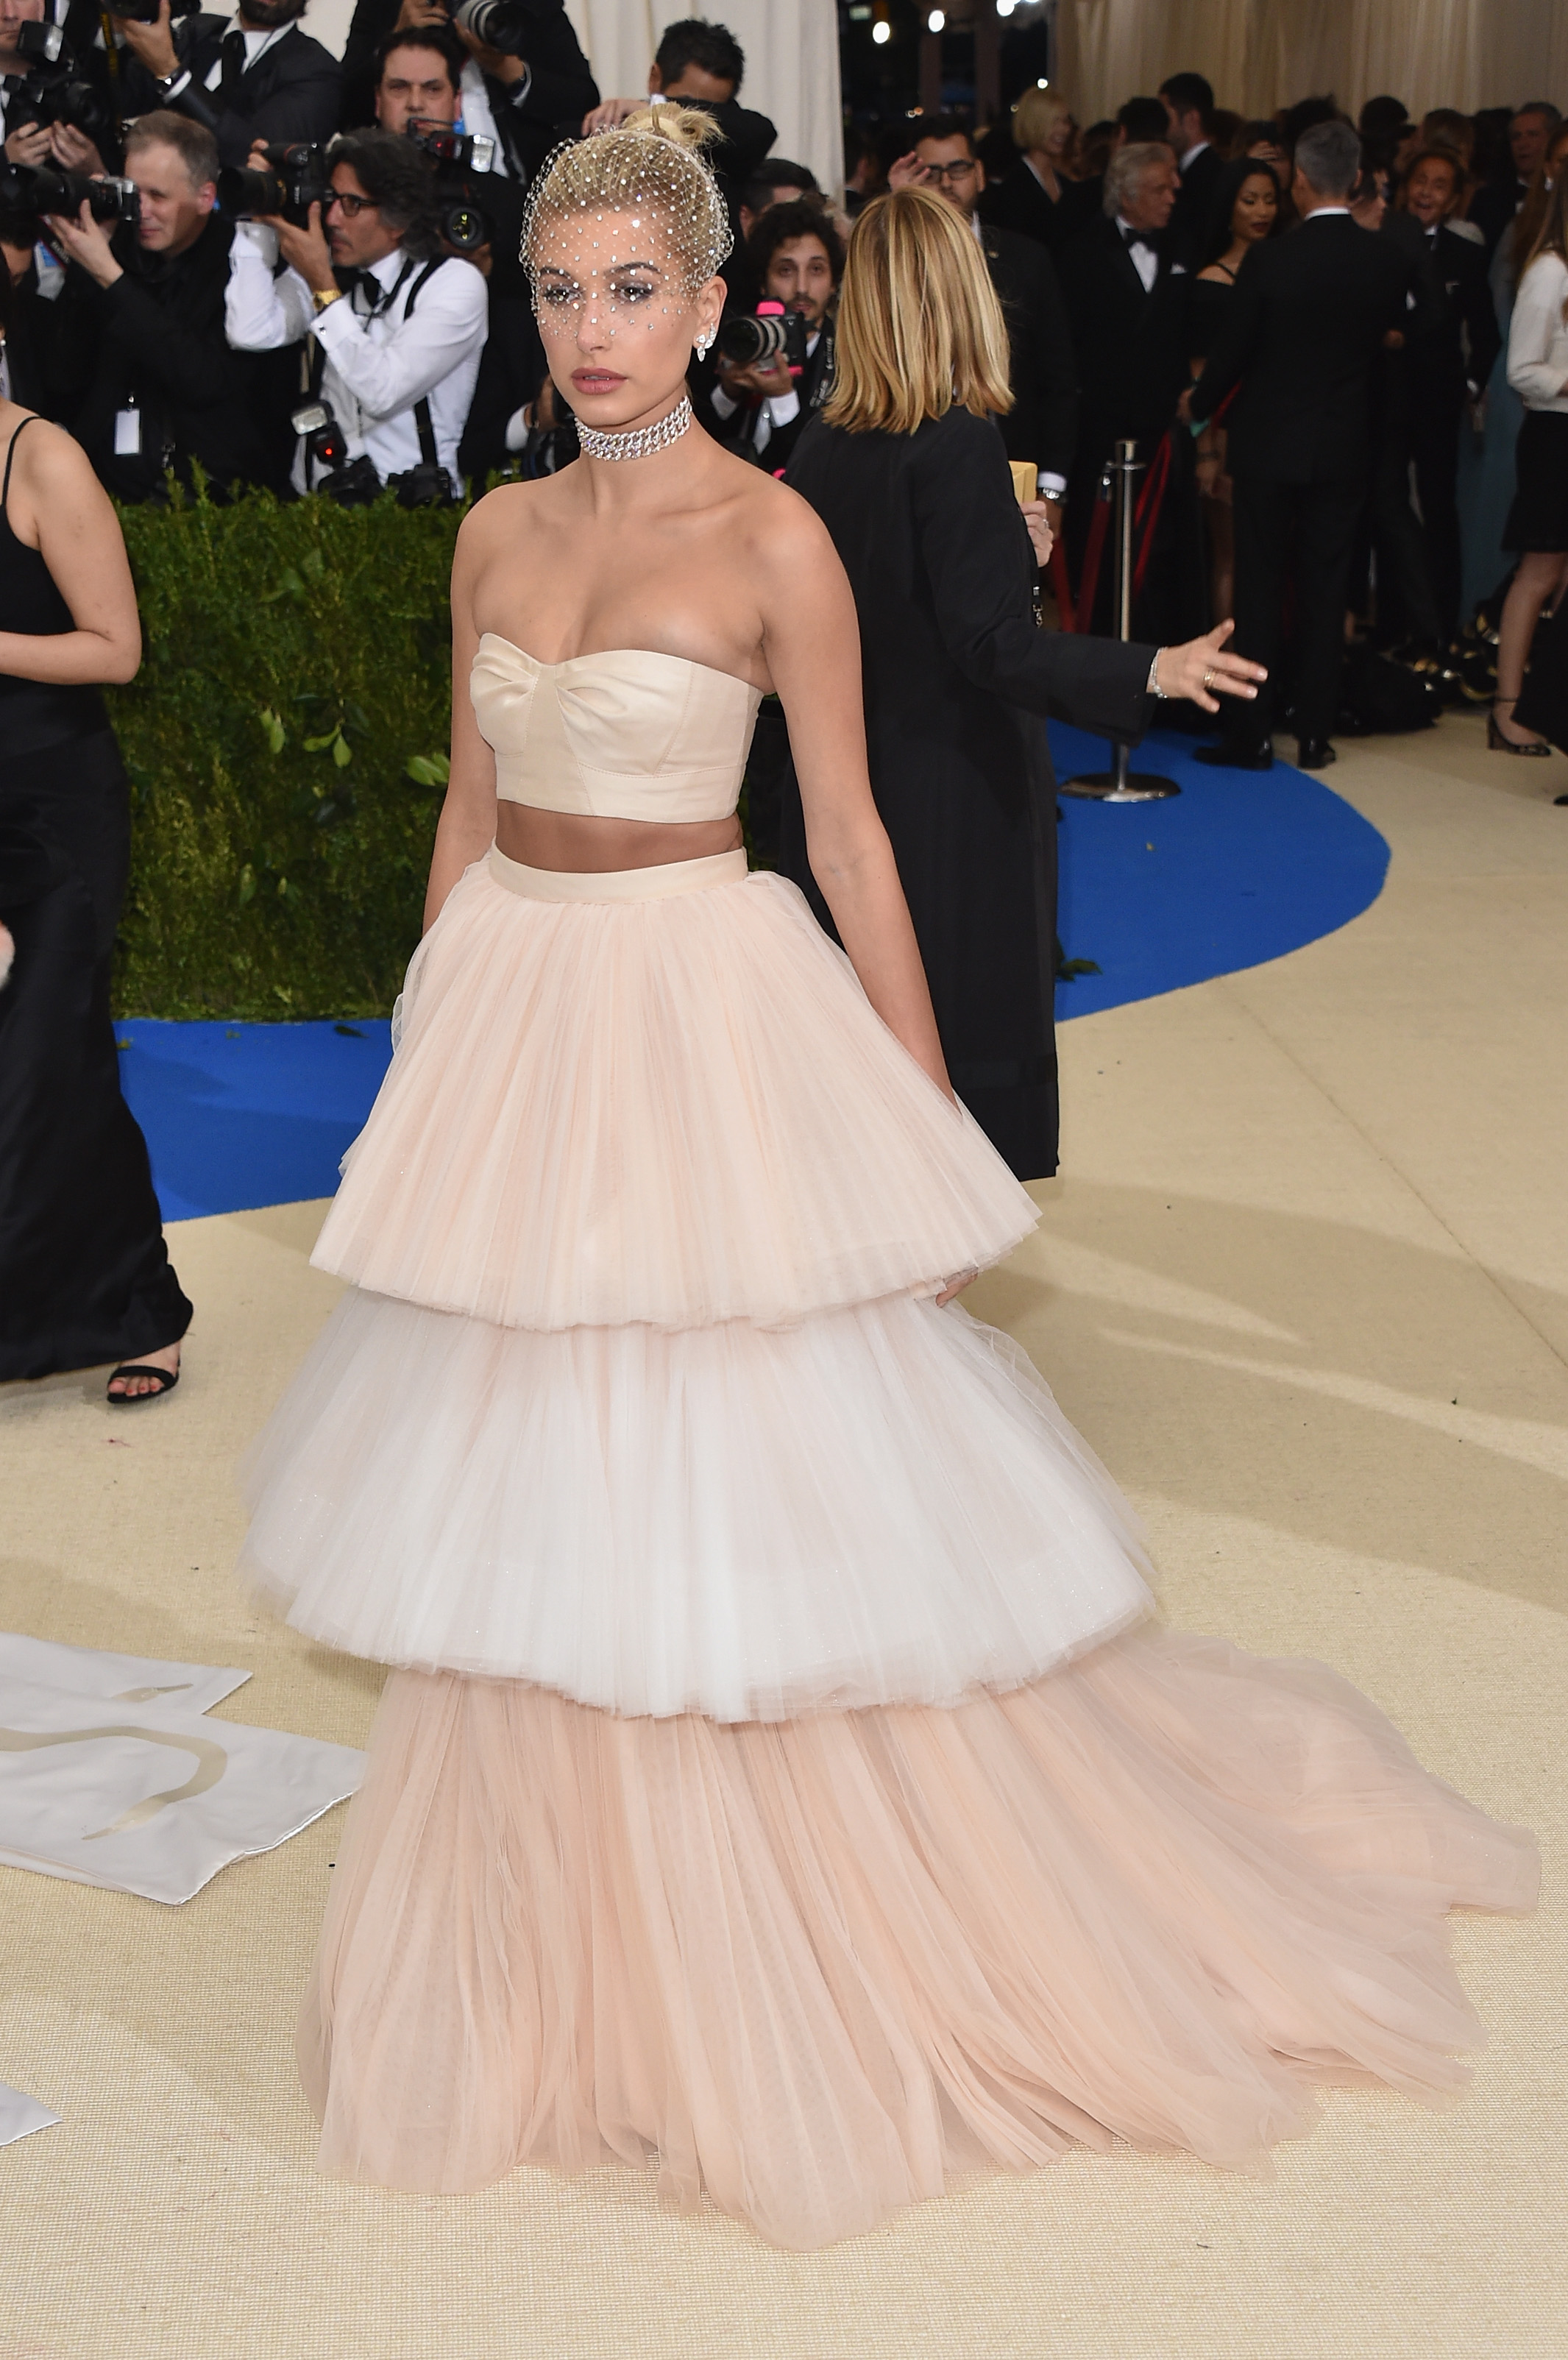 Hailey Baldwin Met Gala 2017 Dress